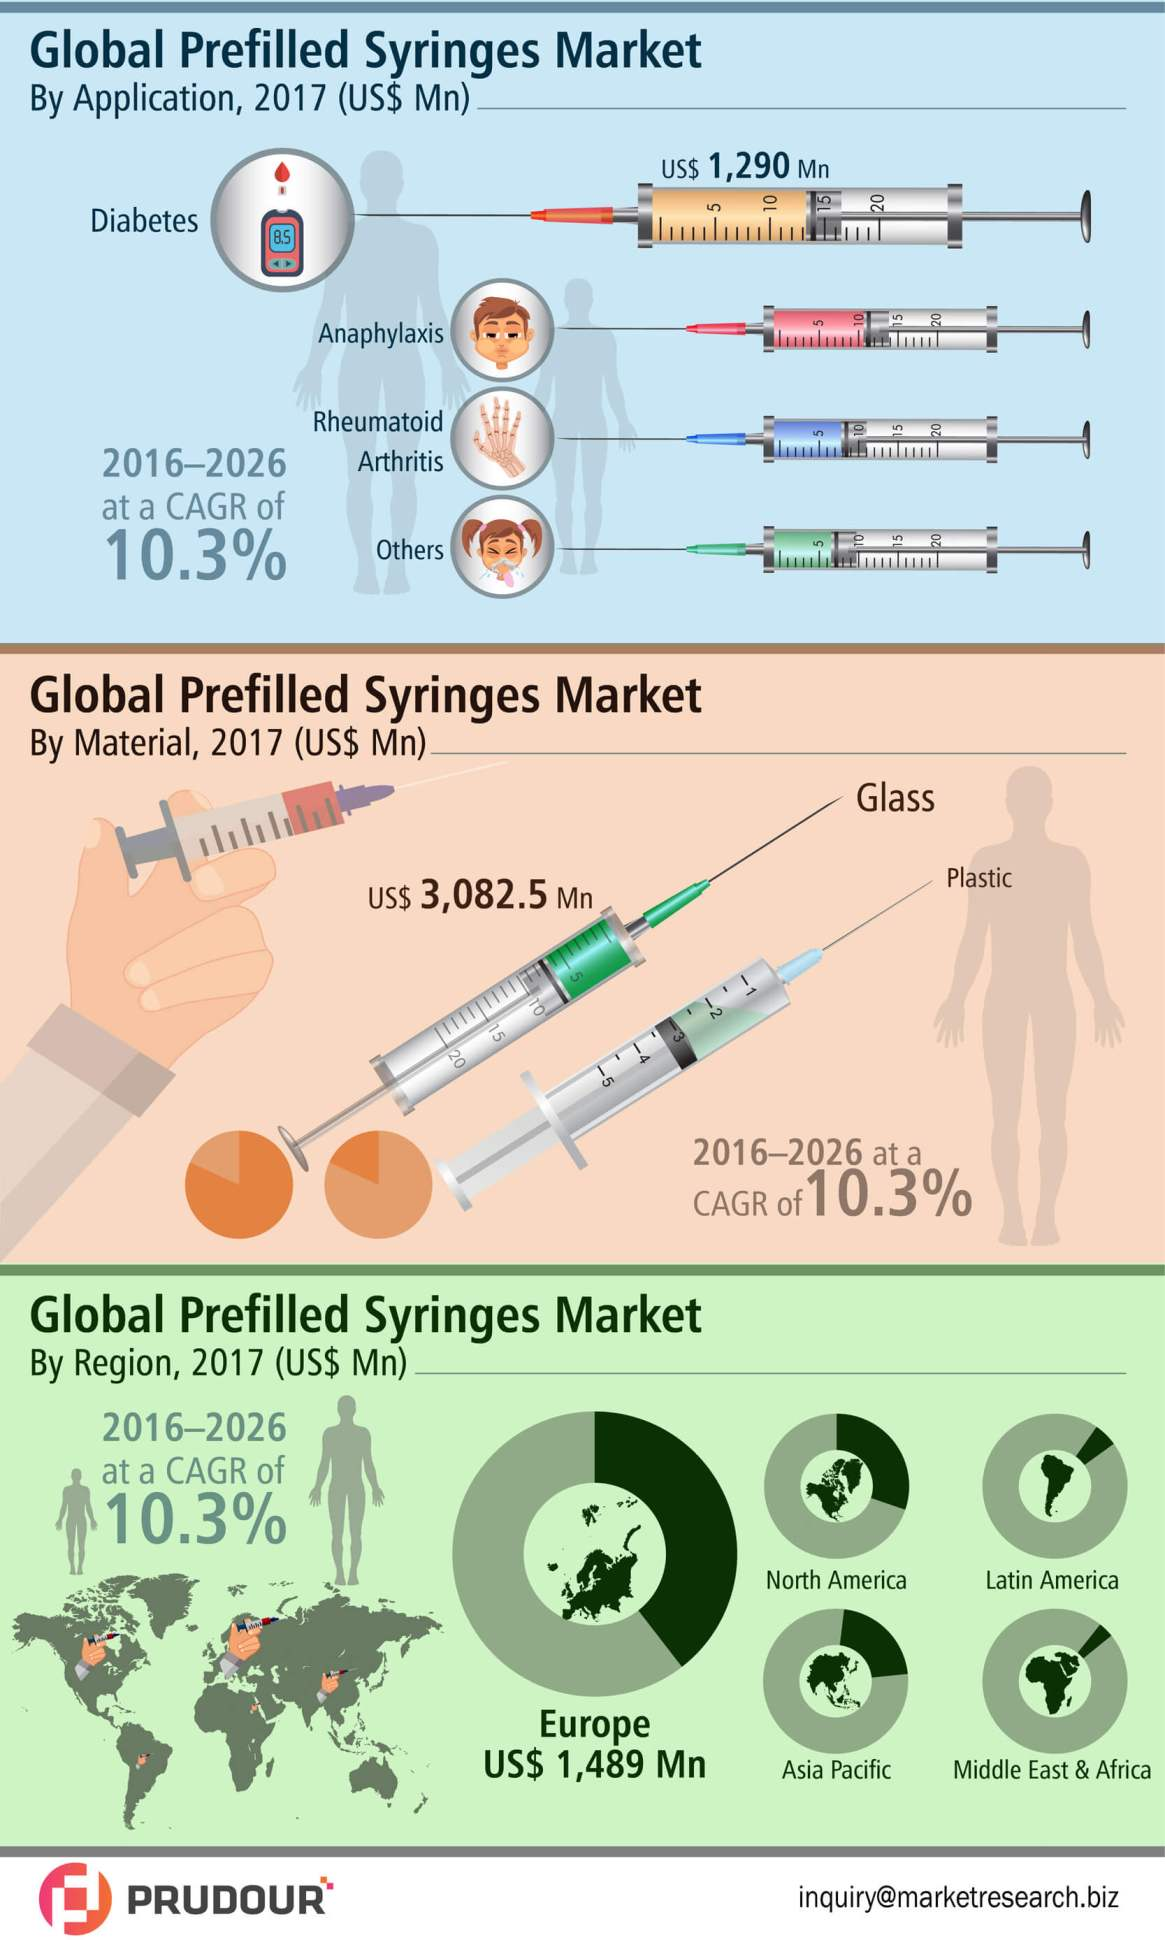 2026 US$ US$ 9,000 Mn: Global Prefilled Syringes Market is expected to reach US$ US$ 9,000 Mn in 2026